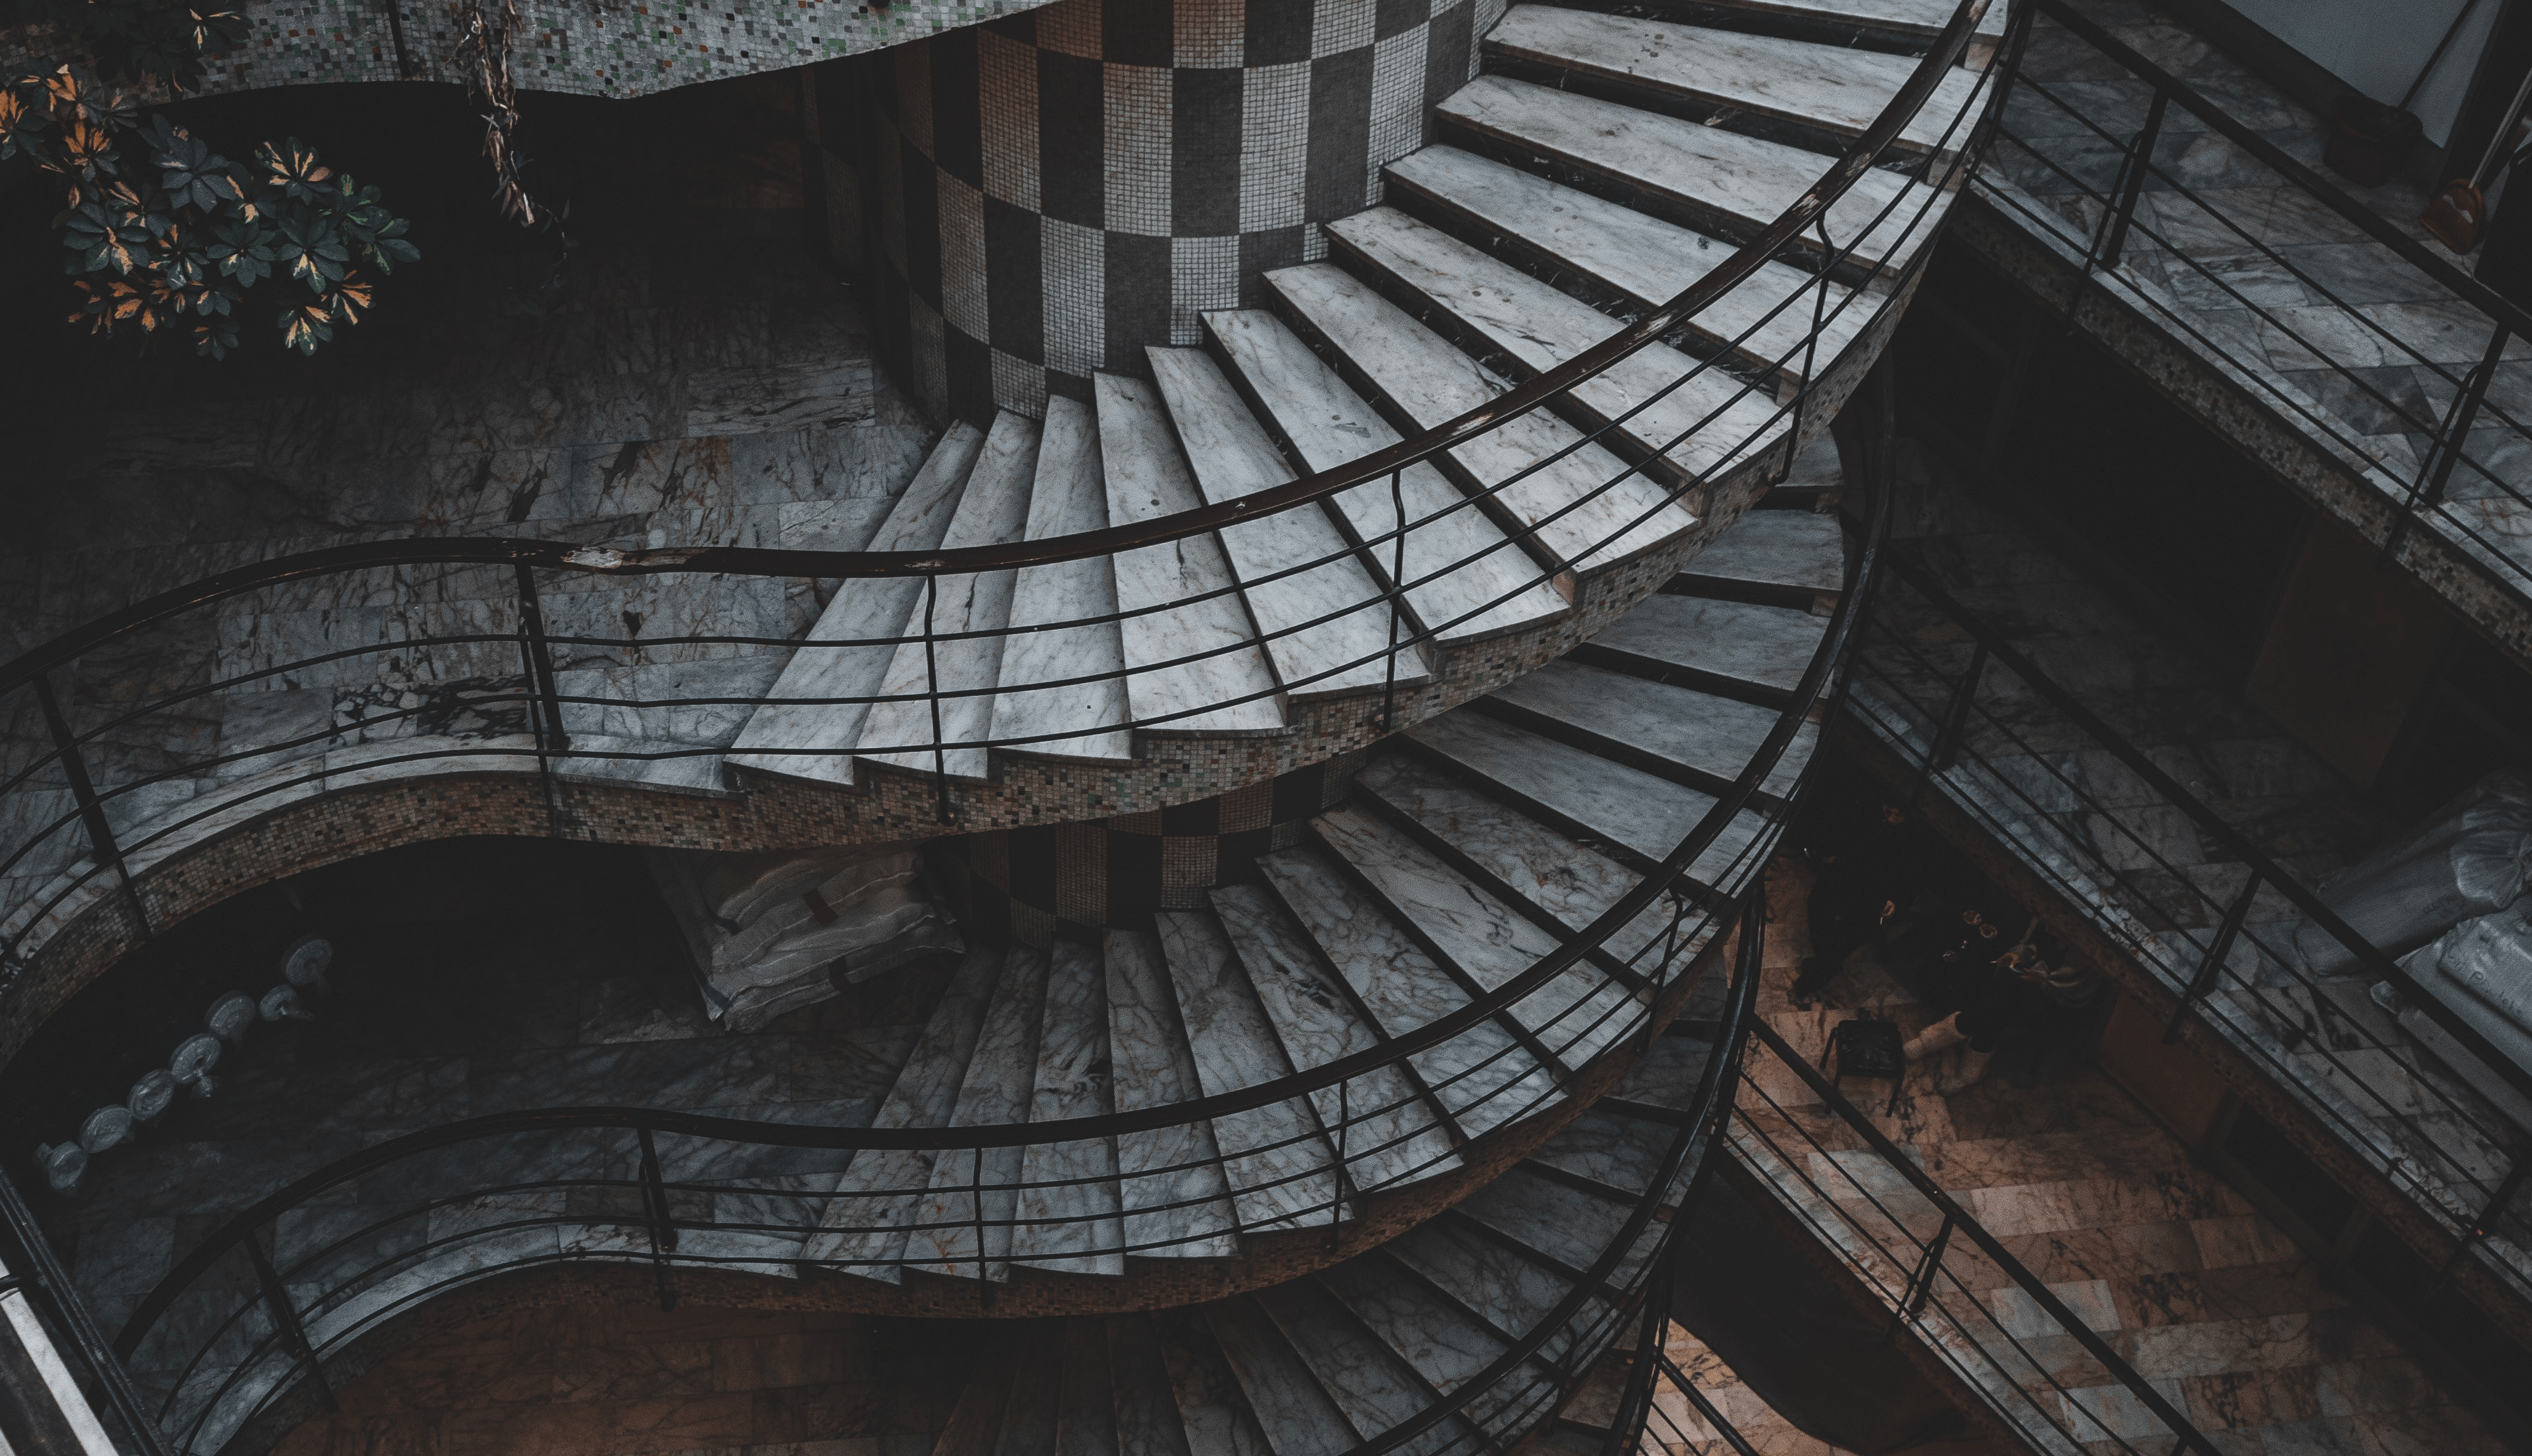 Photo-by-Musa-Ortaç-from-Pexels-.png